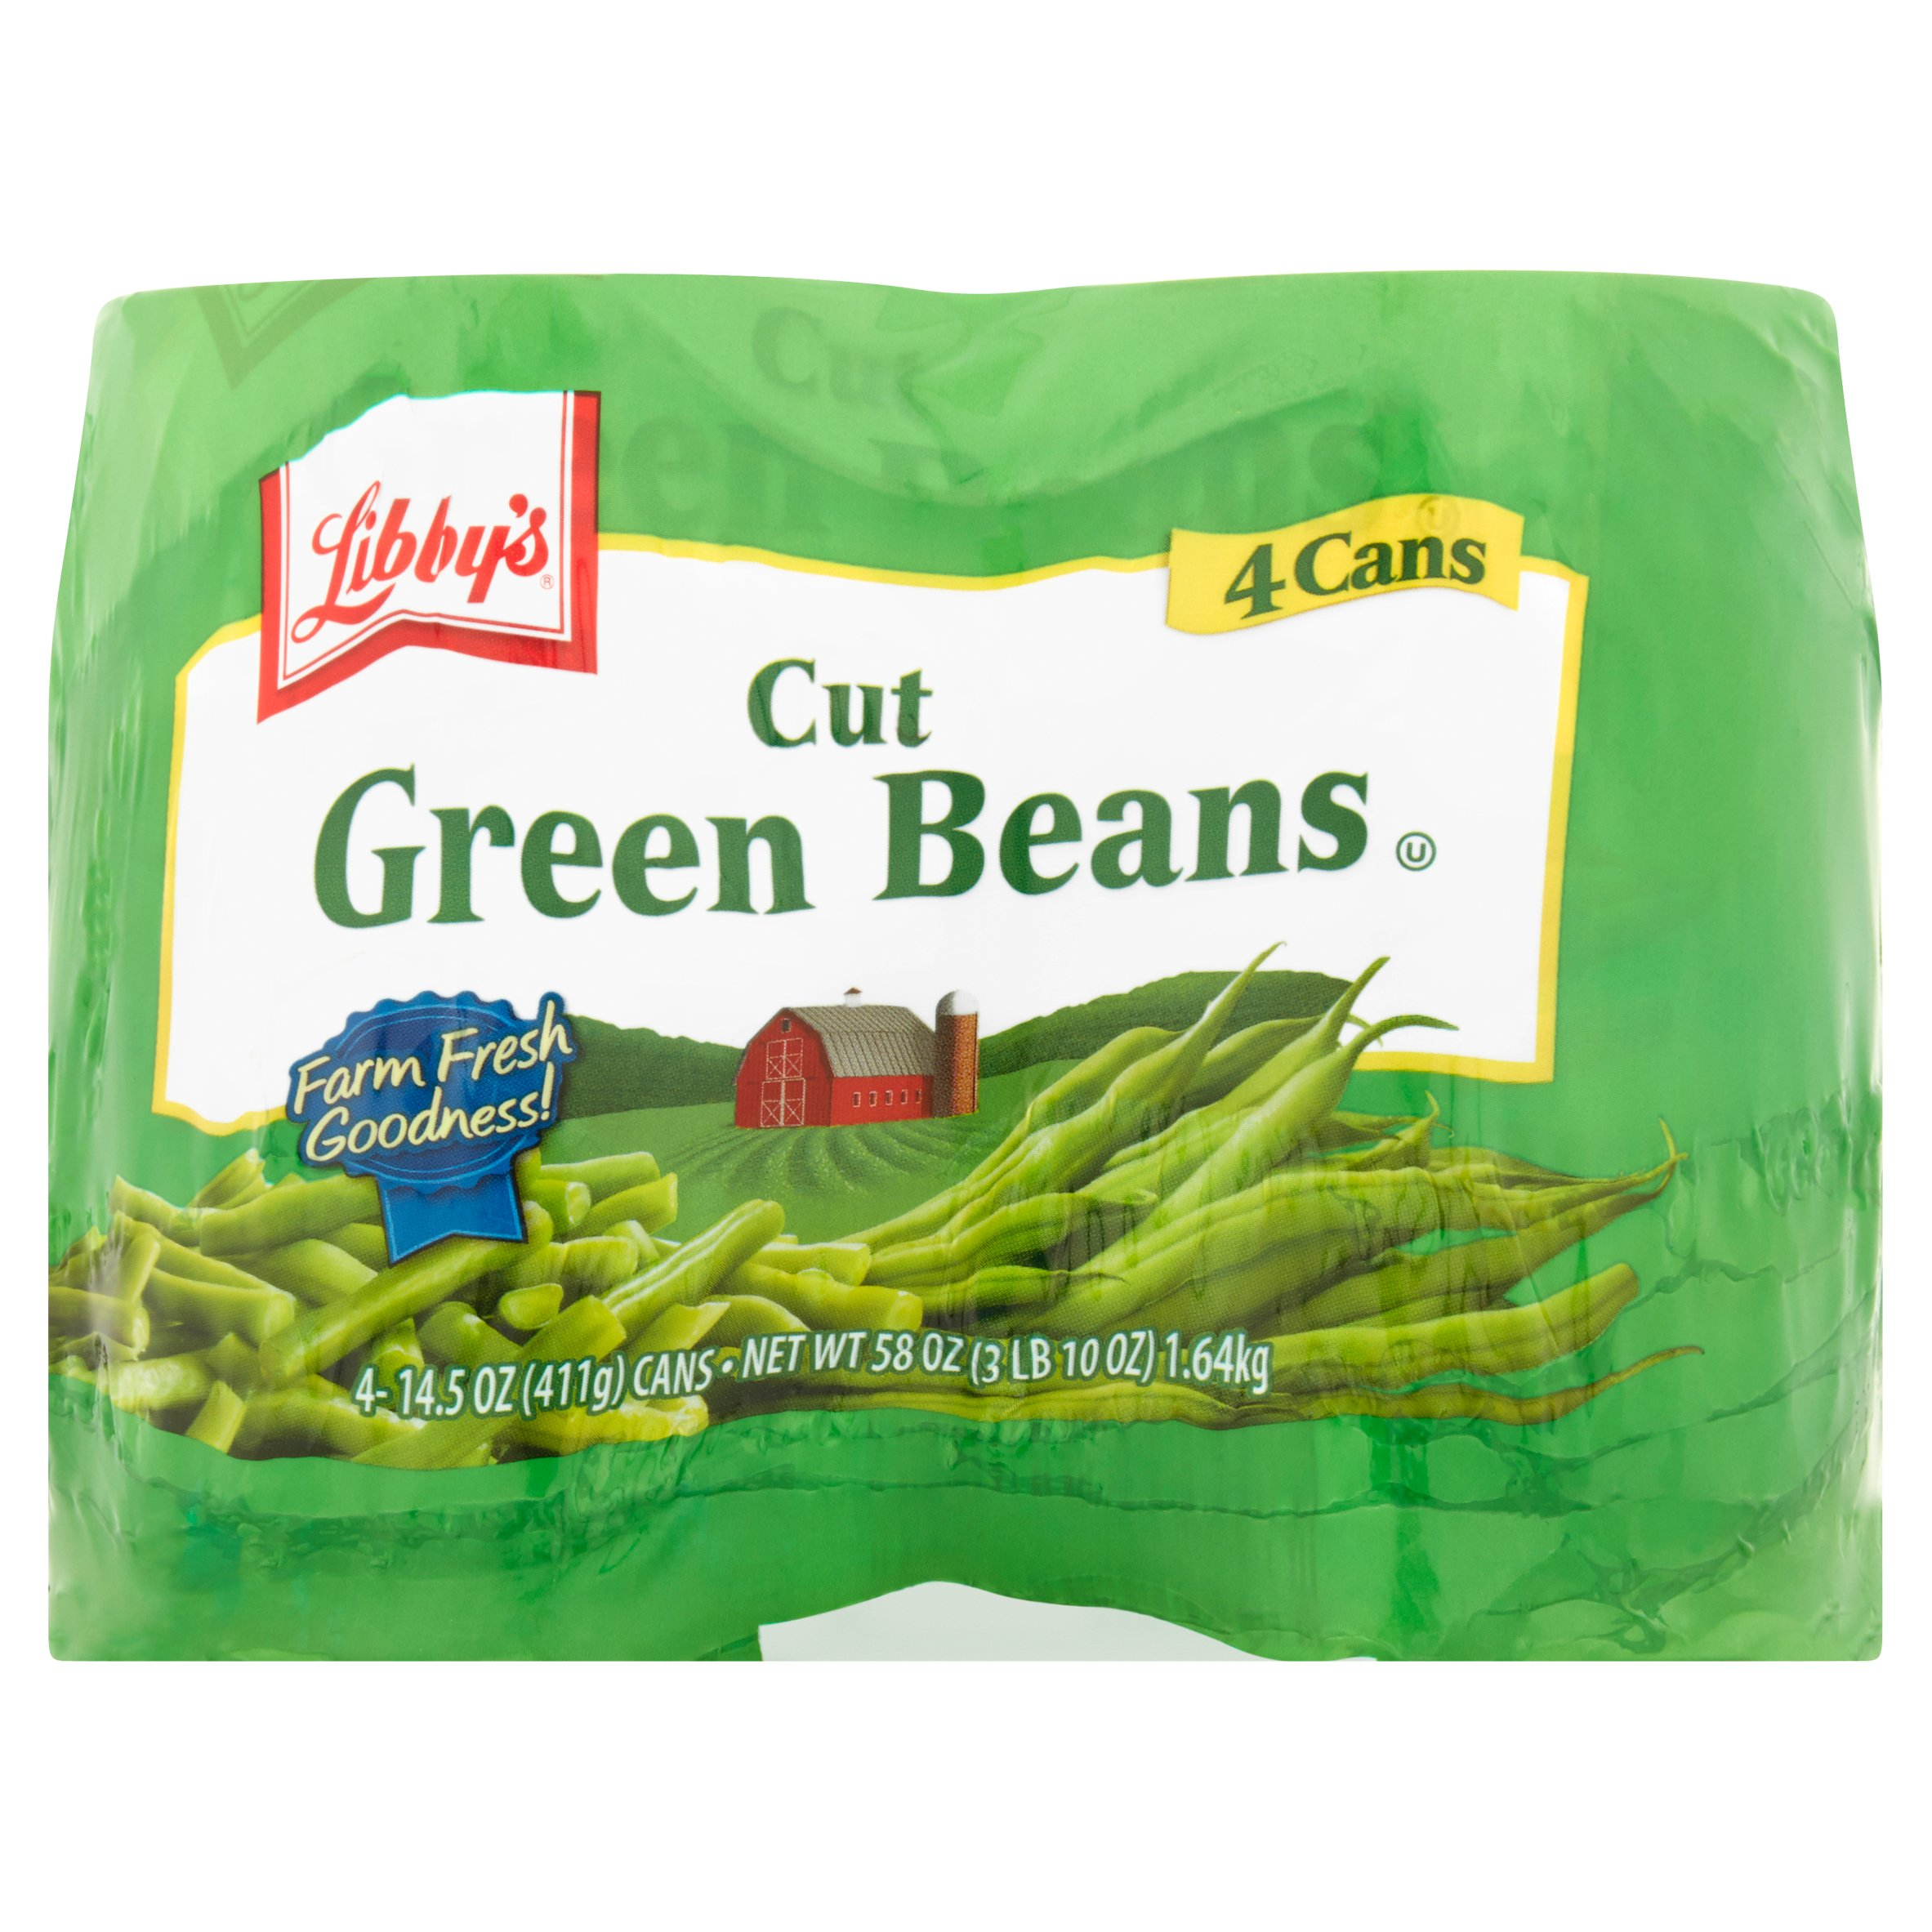 Libby's Cut Green Beans, 14.5 oz, 4 count